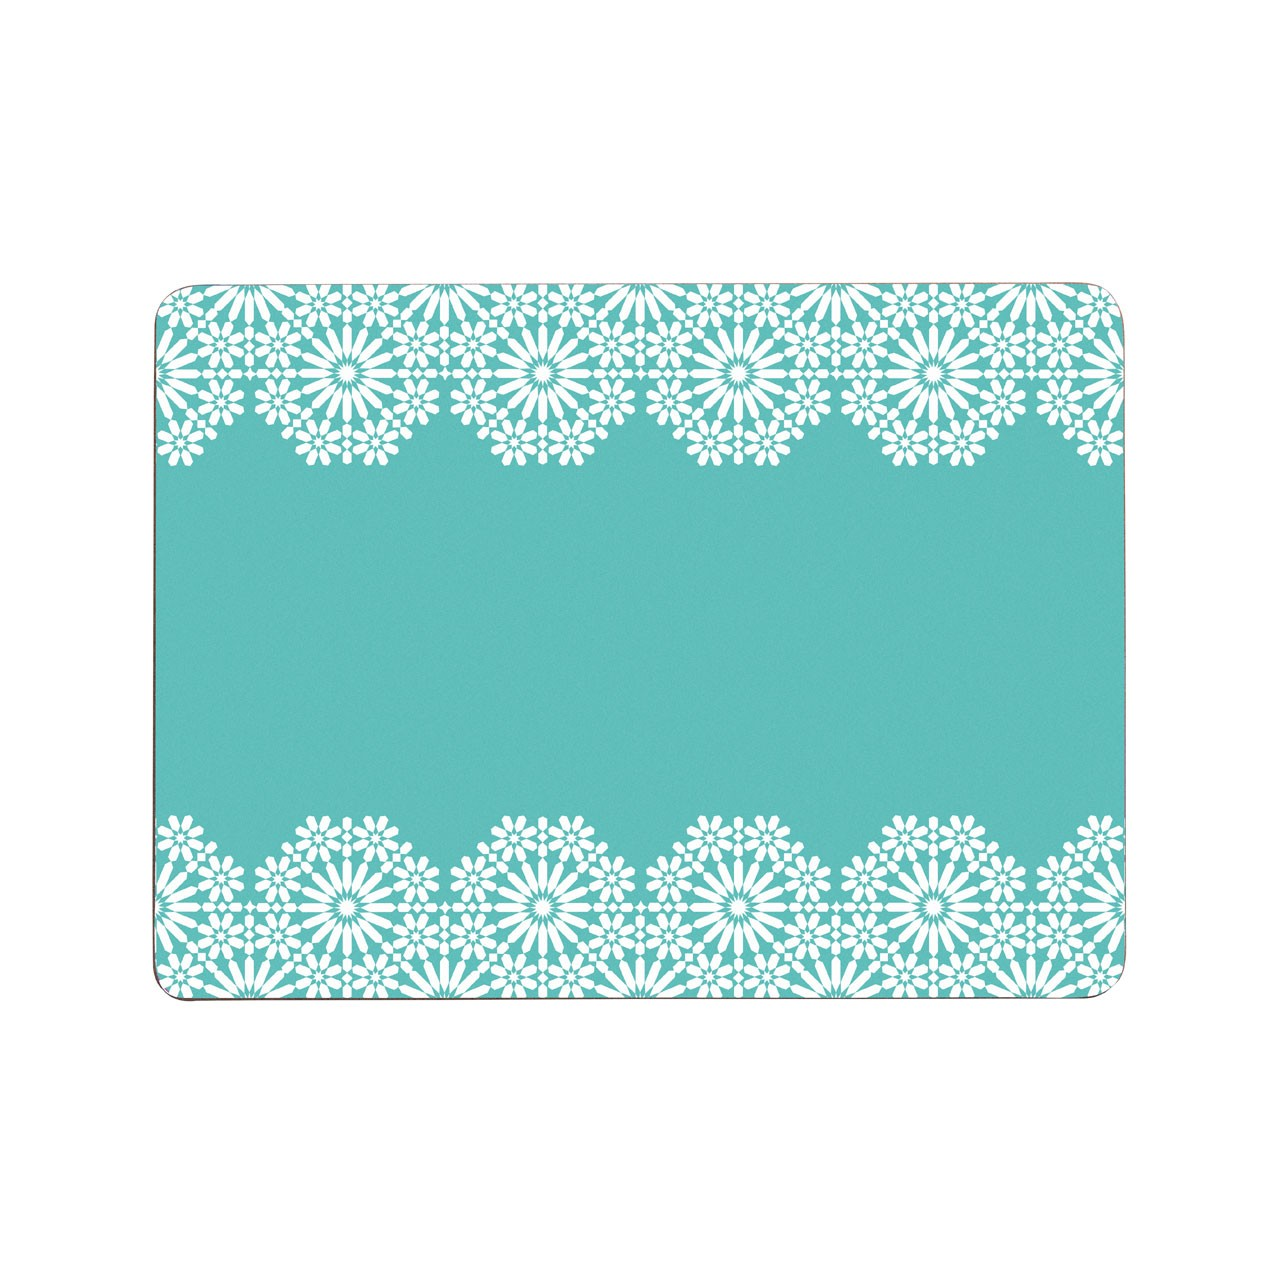 Garland Placemats, Set of 4